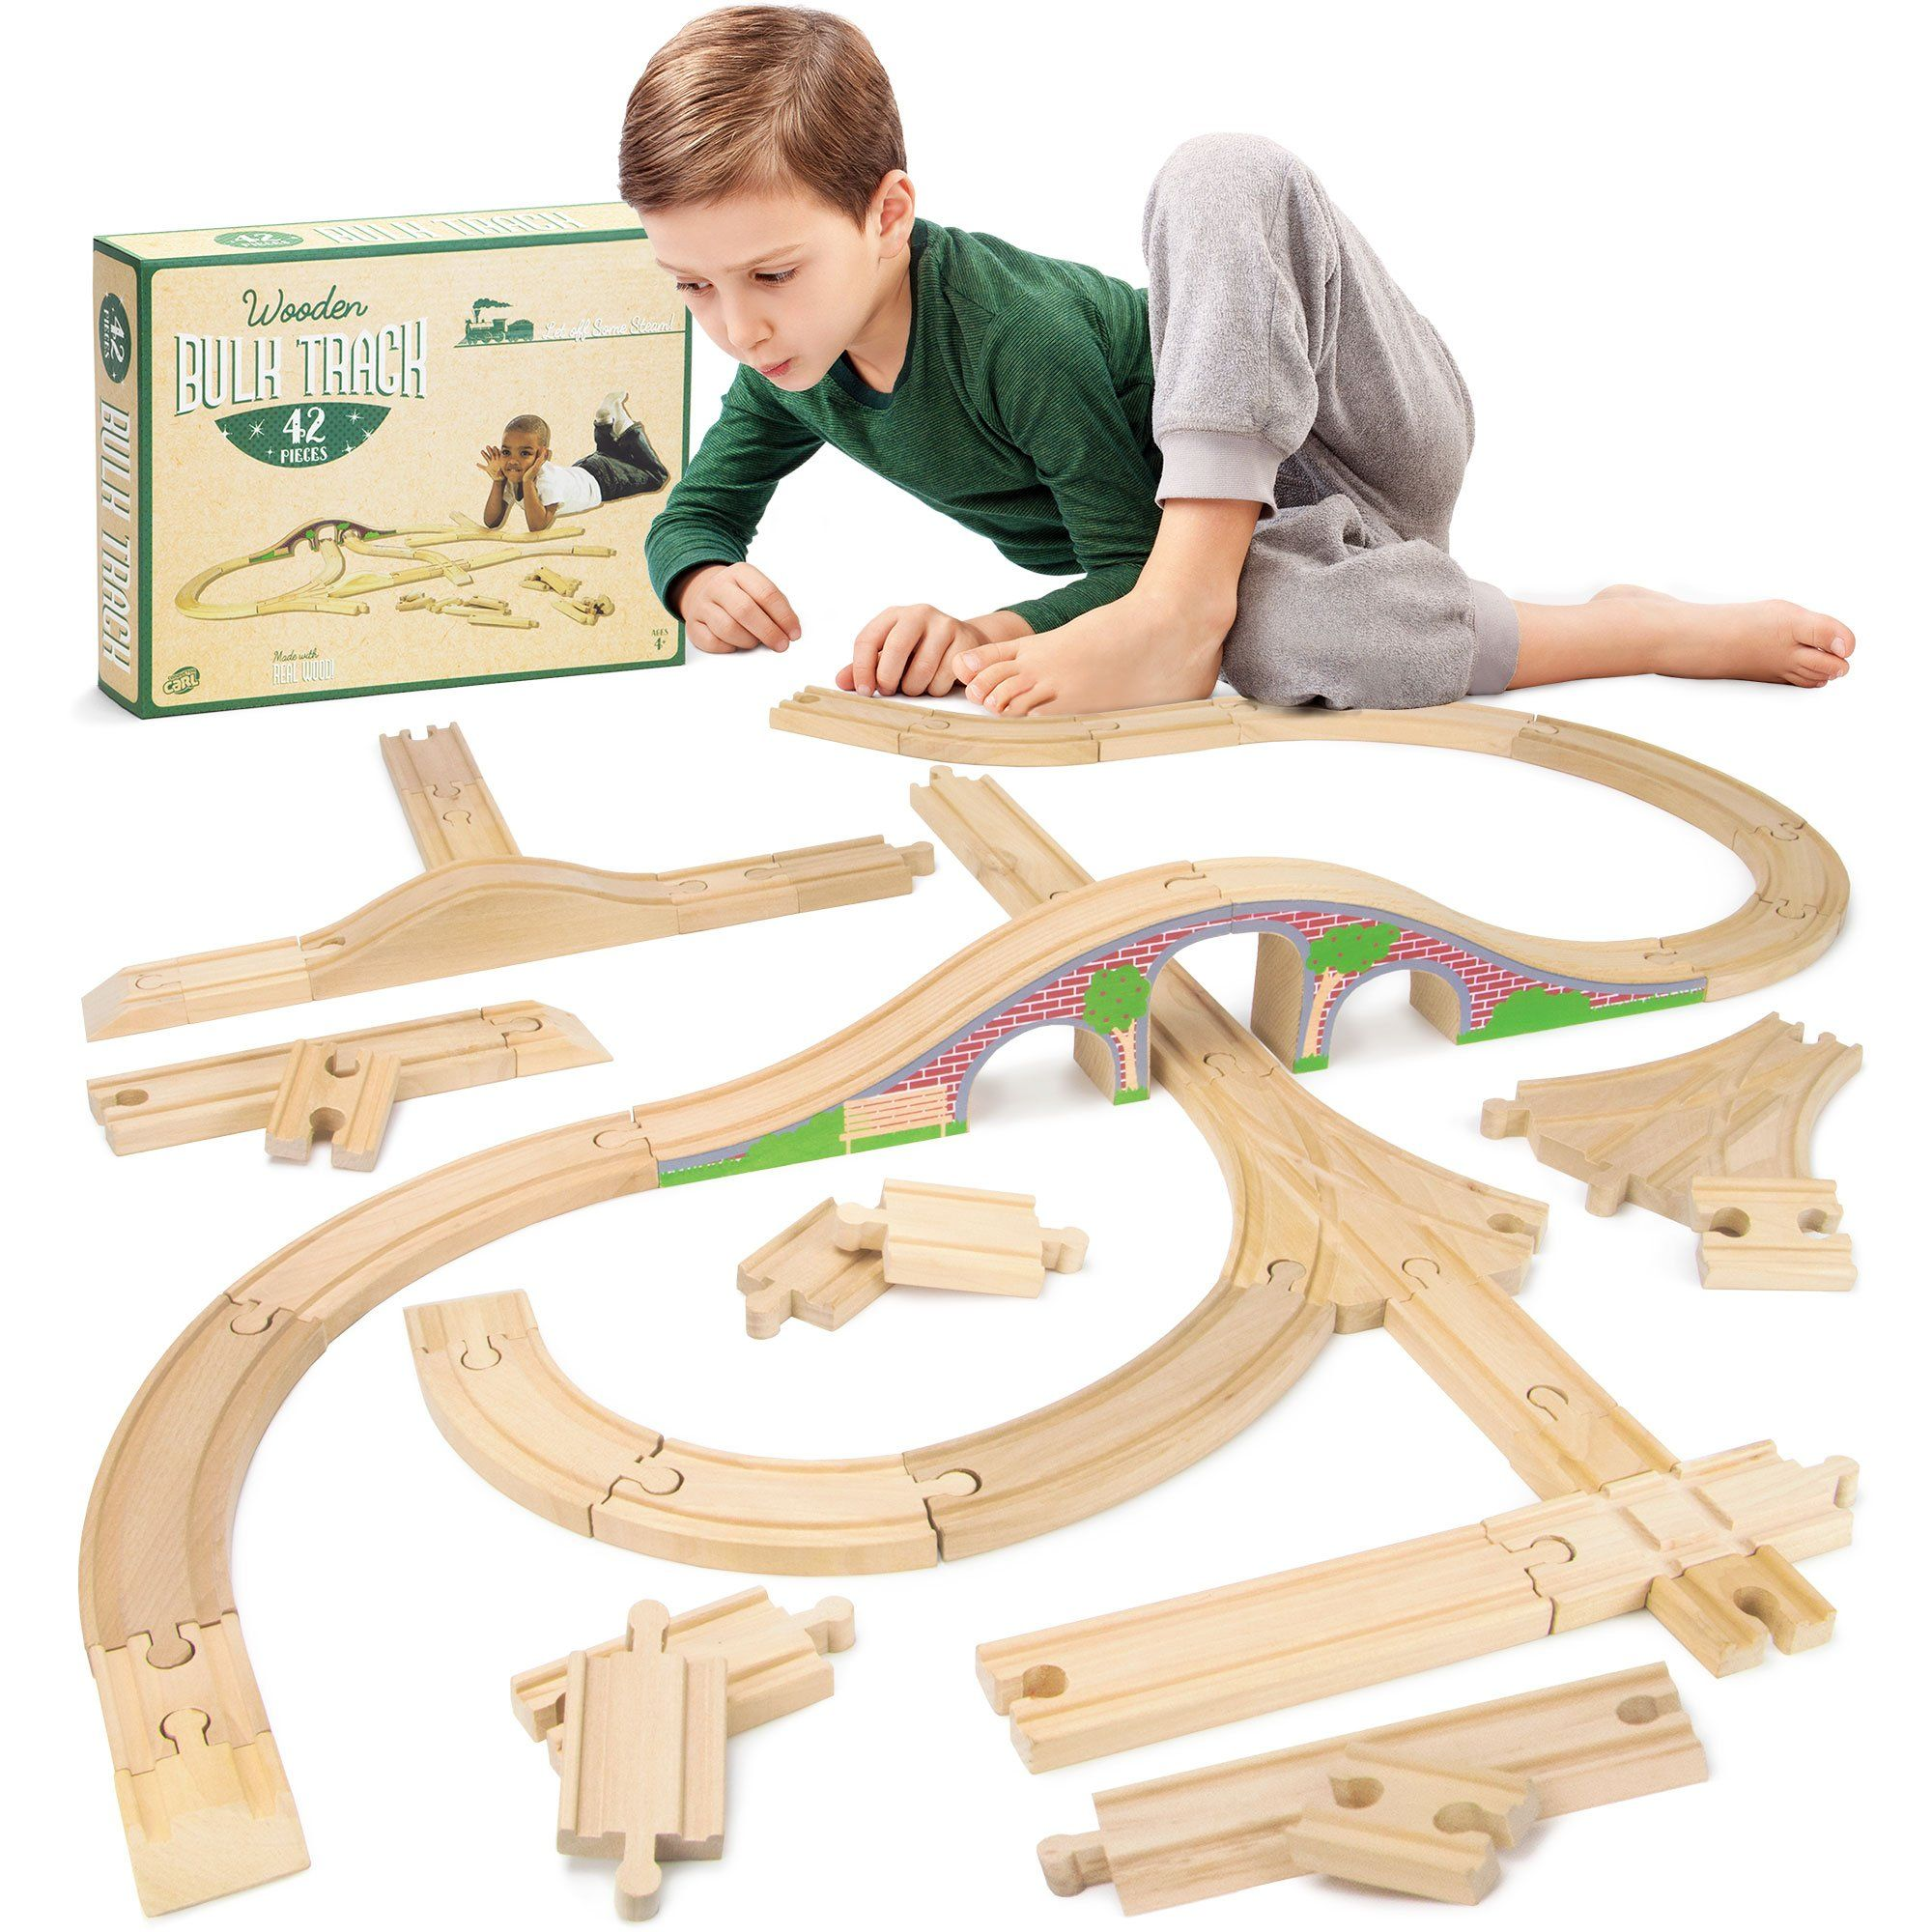 42 piece Bulk Value Wooden Train Track Booster Pack with Red Brick Bridge patible